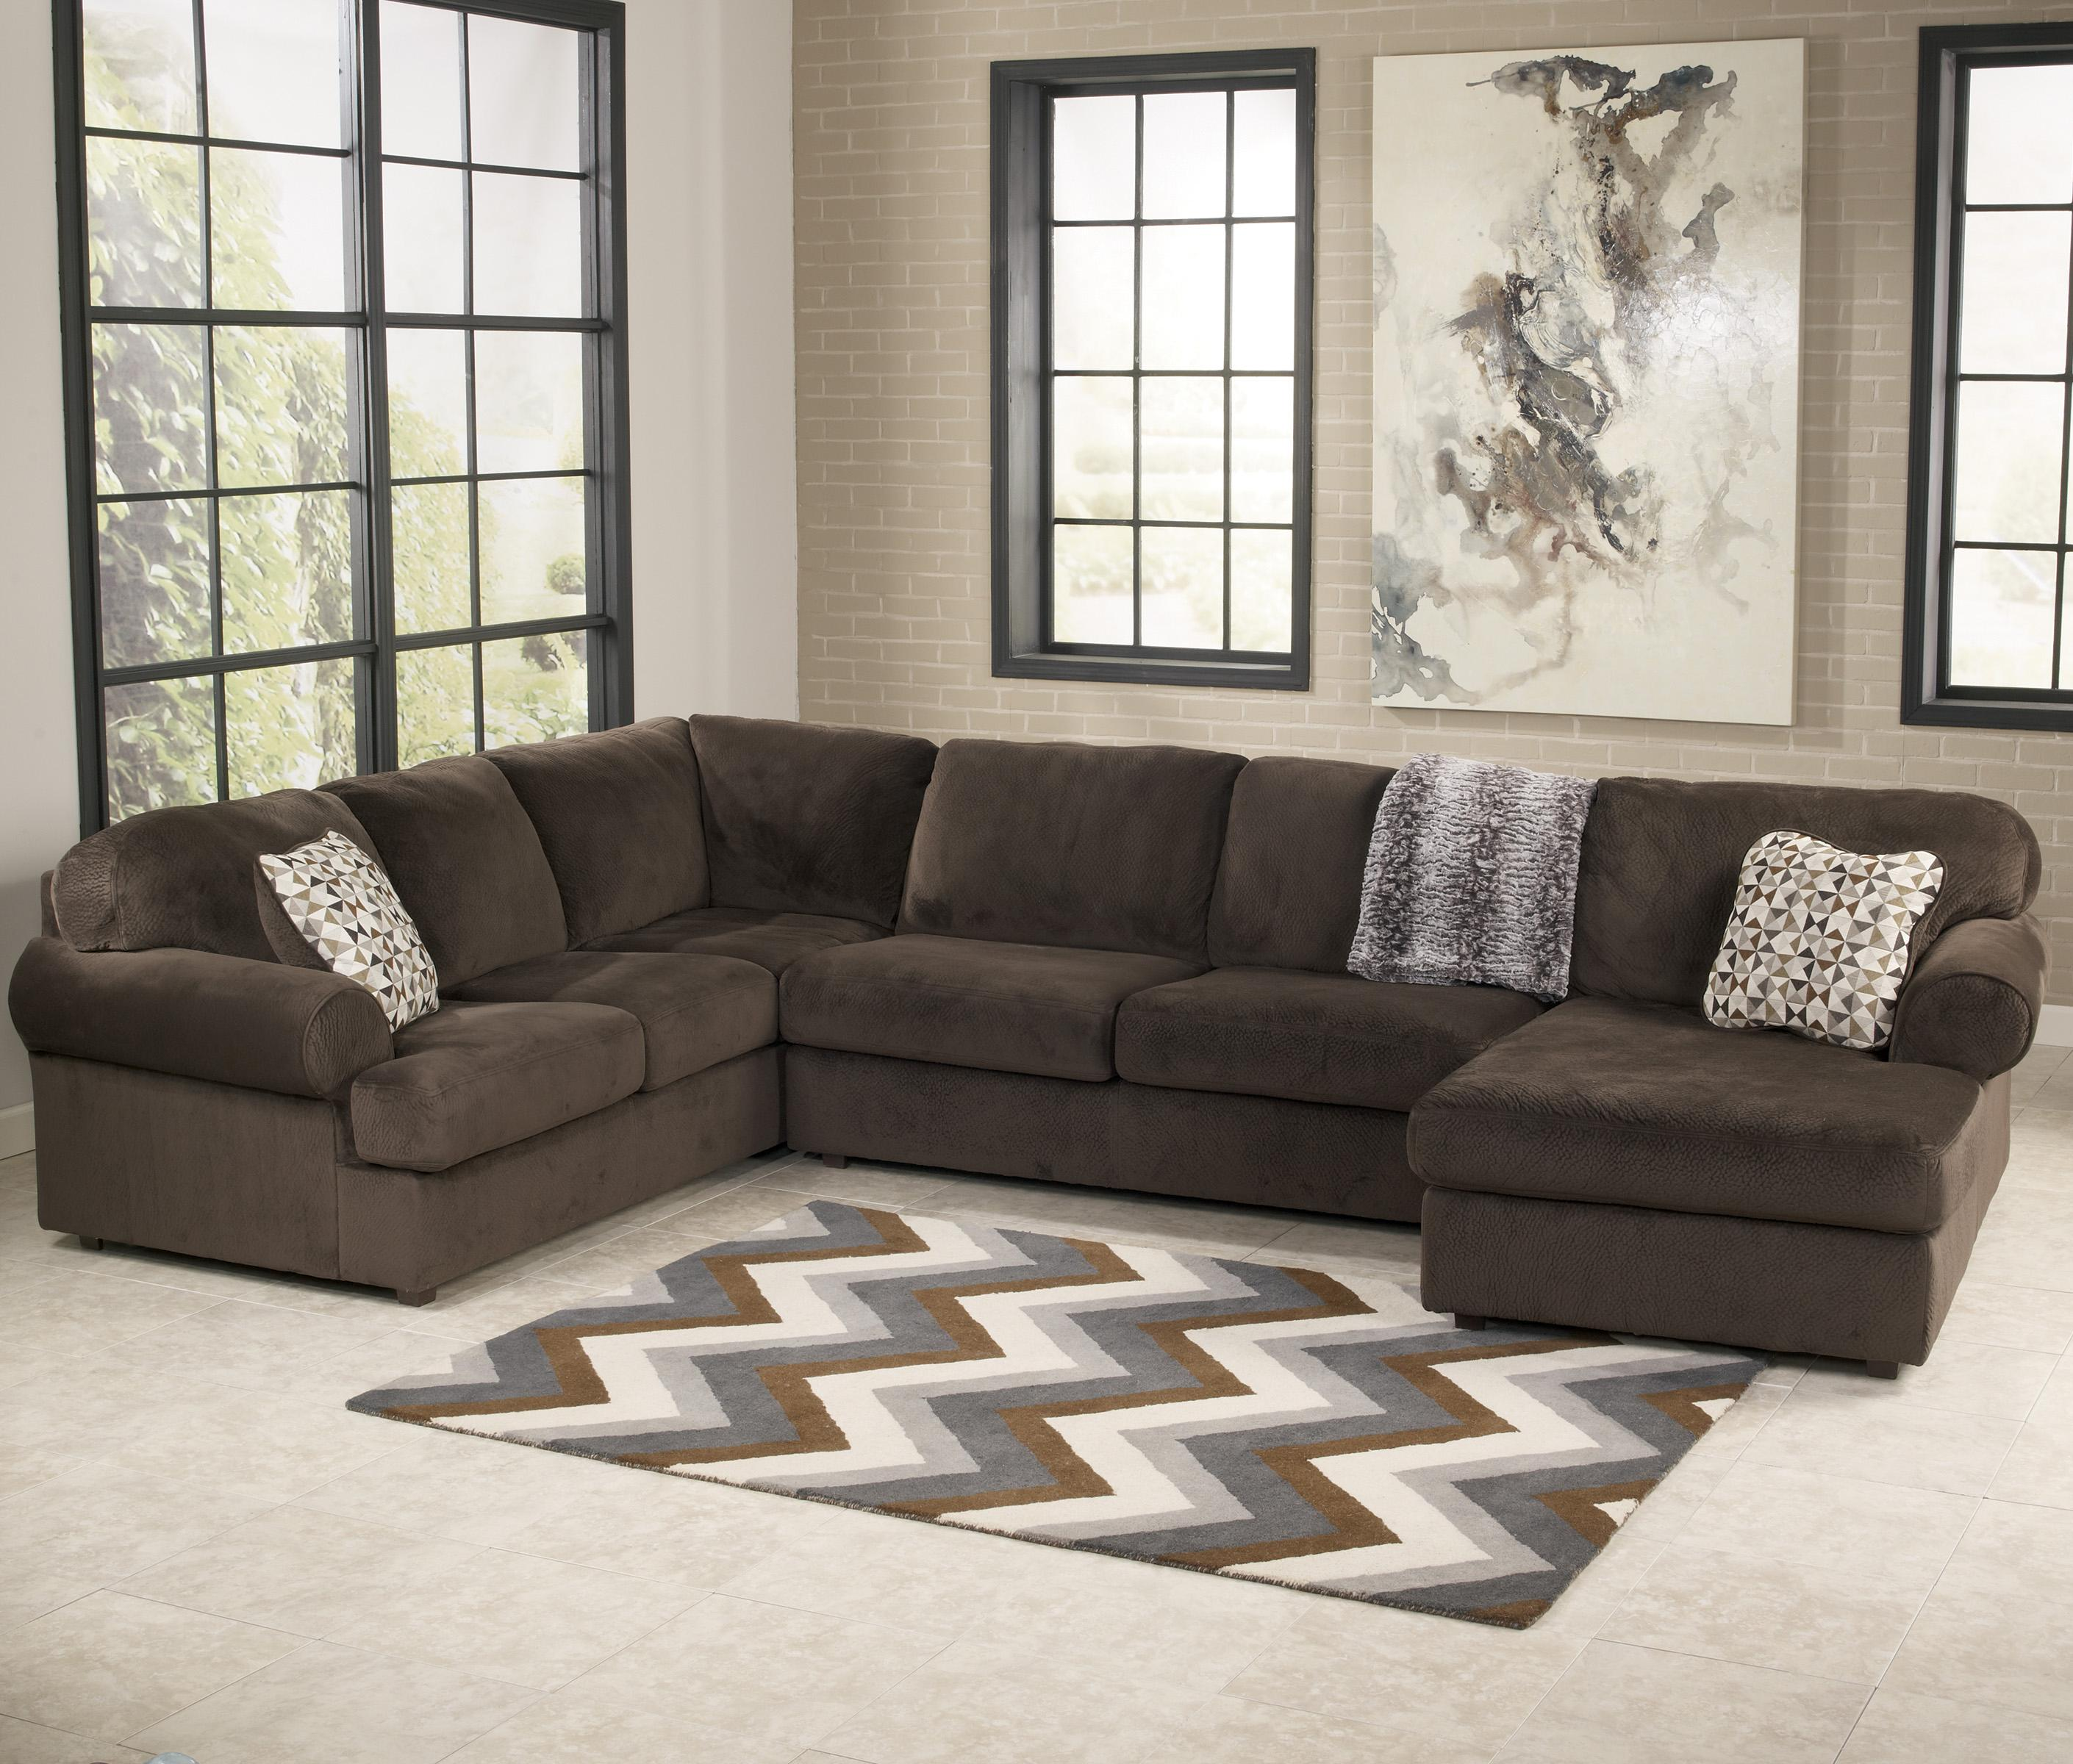 Ashleys Furnitur: Casual Sectional Sofa With Right Chaise By Signature